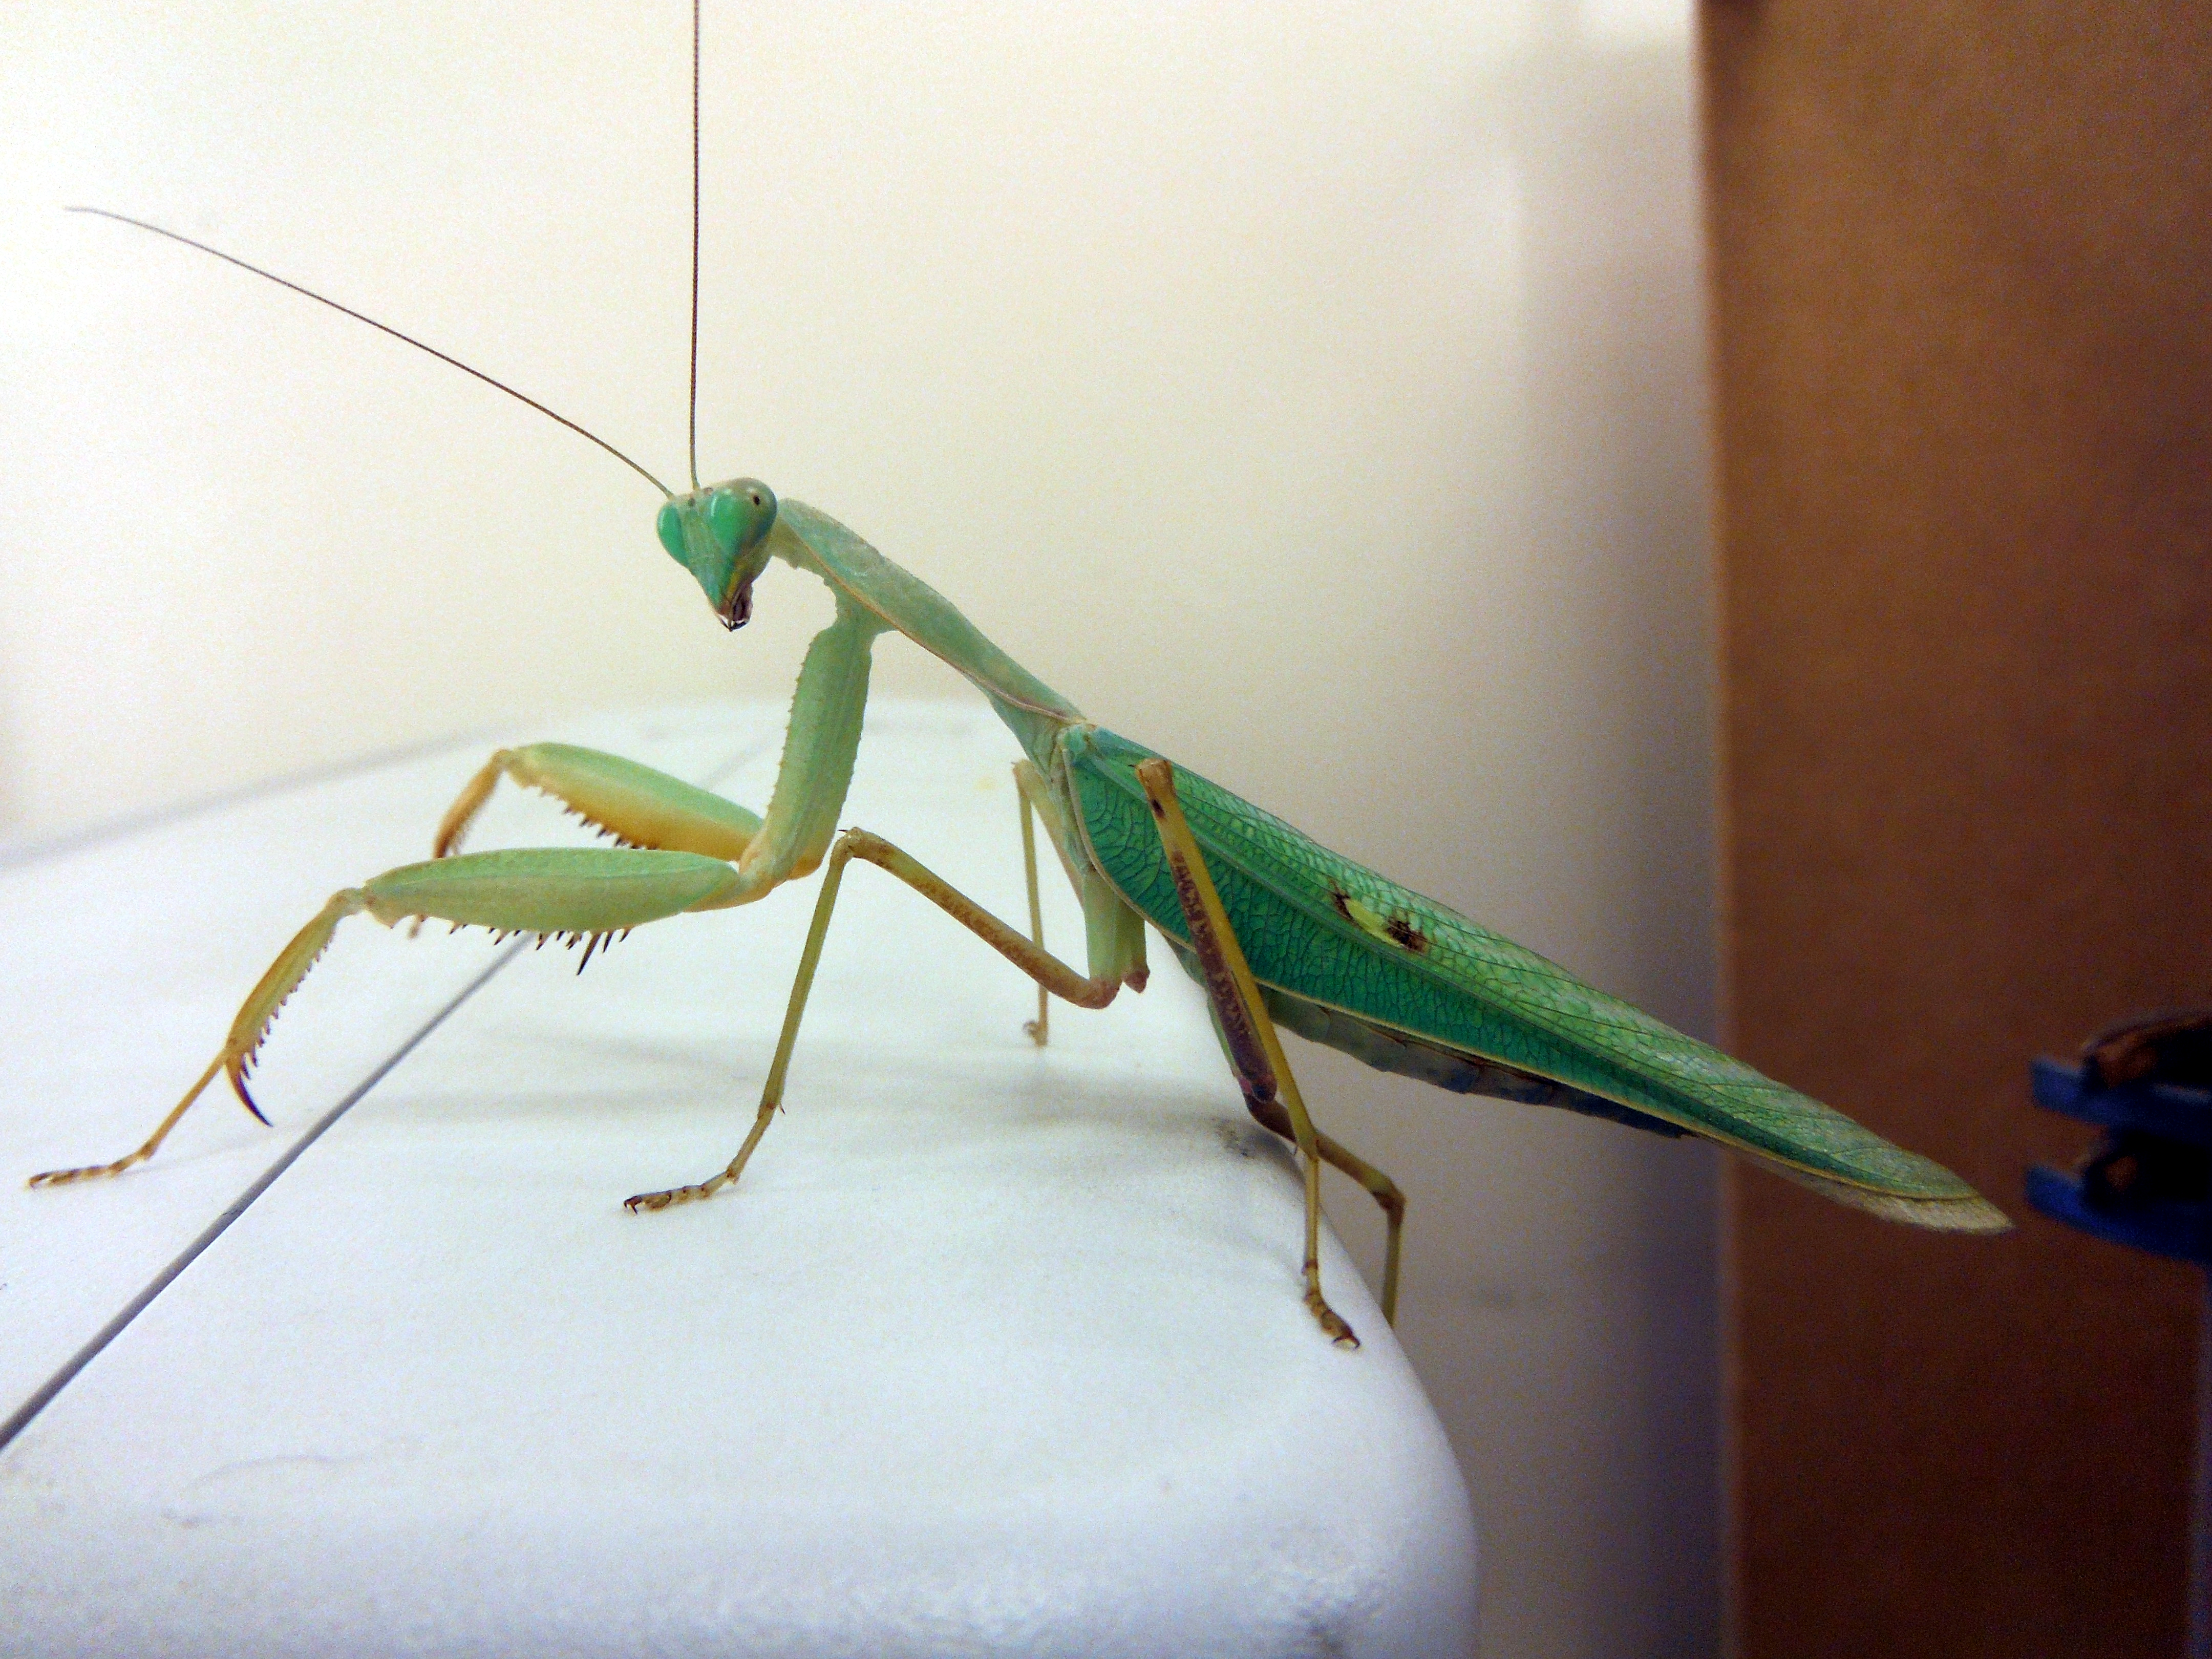 Fantastic close-up of a mantis that has jumped onto the CRT!